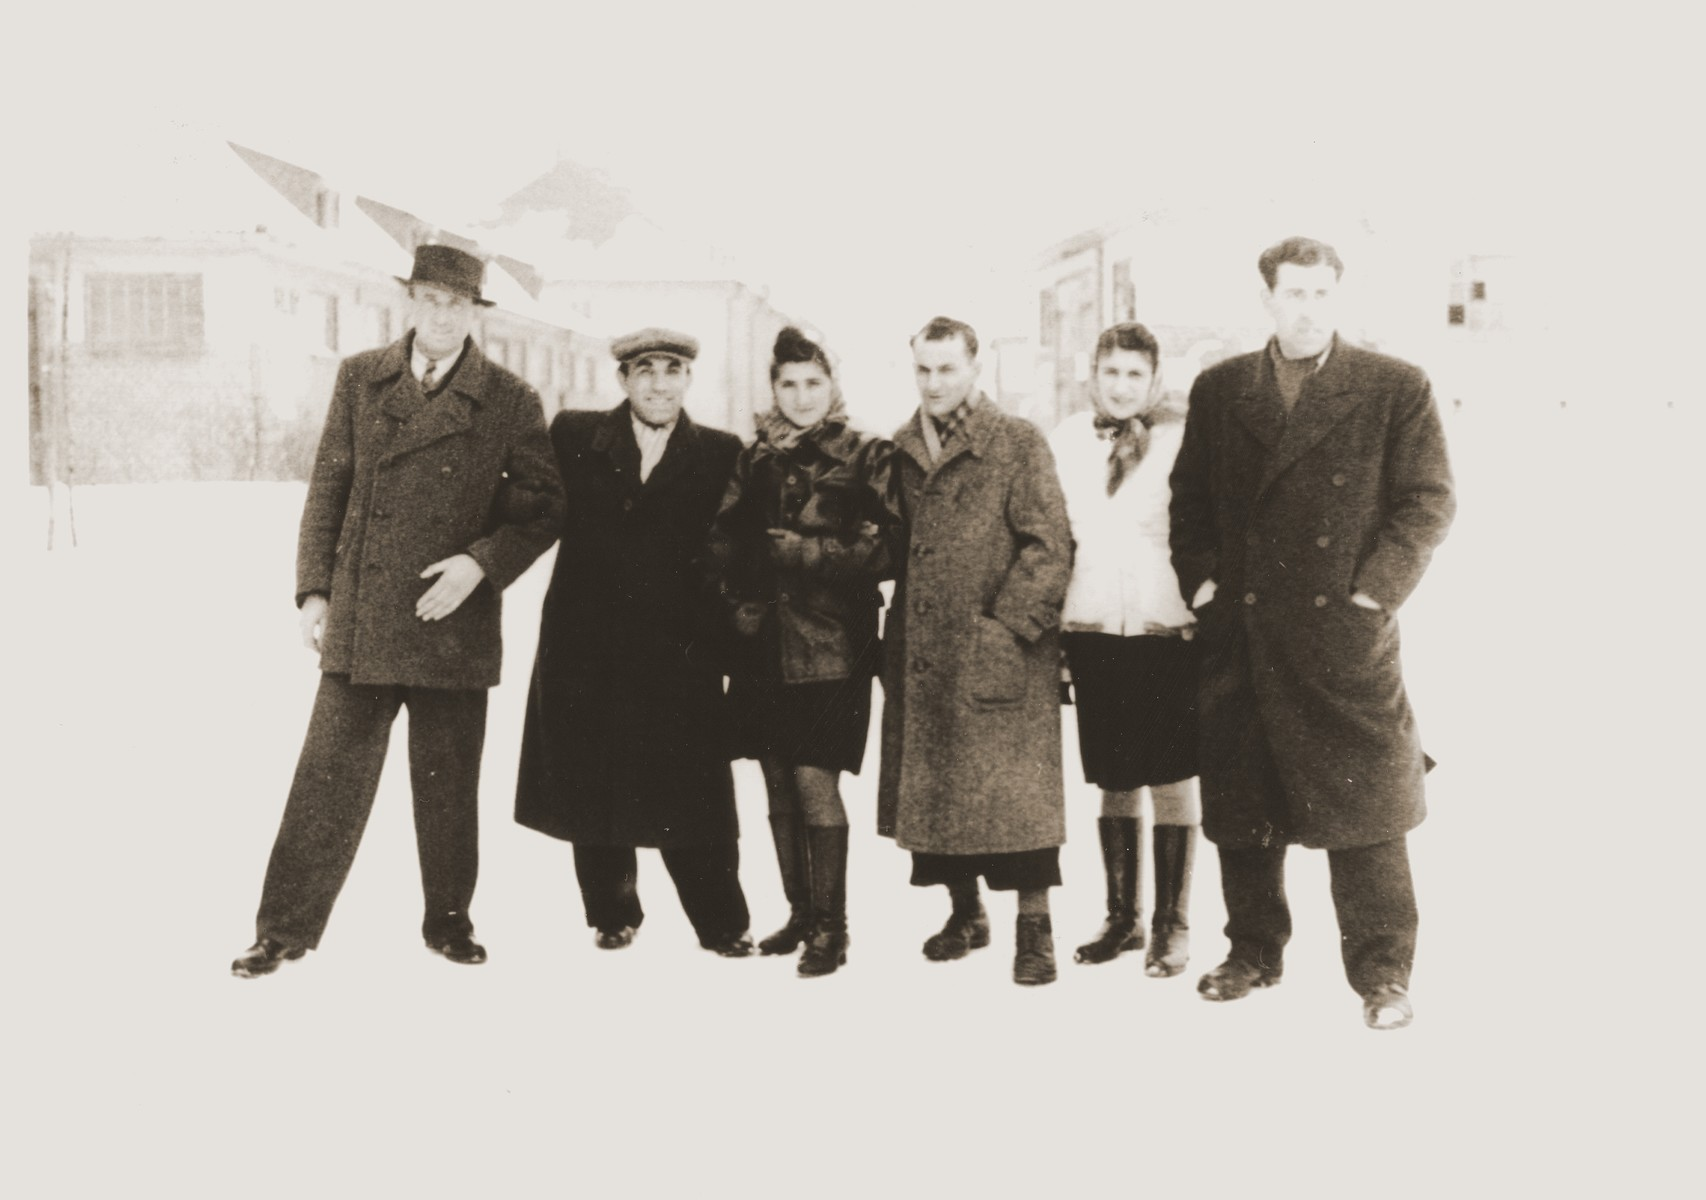 Group portrait of Jewish DPs standing in the snow in the Bergen-Belsen displaced persons camp.  Among those pictured are: Moishe Broda, David Marmor, Edek Goldblum and Manya (Goldblum) Marmor.